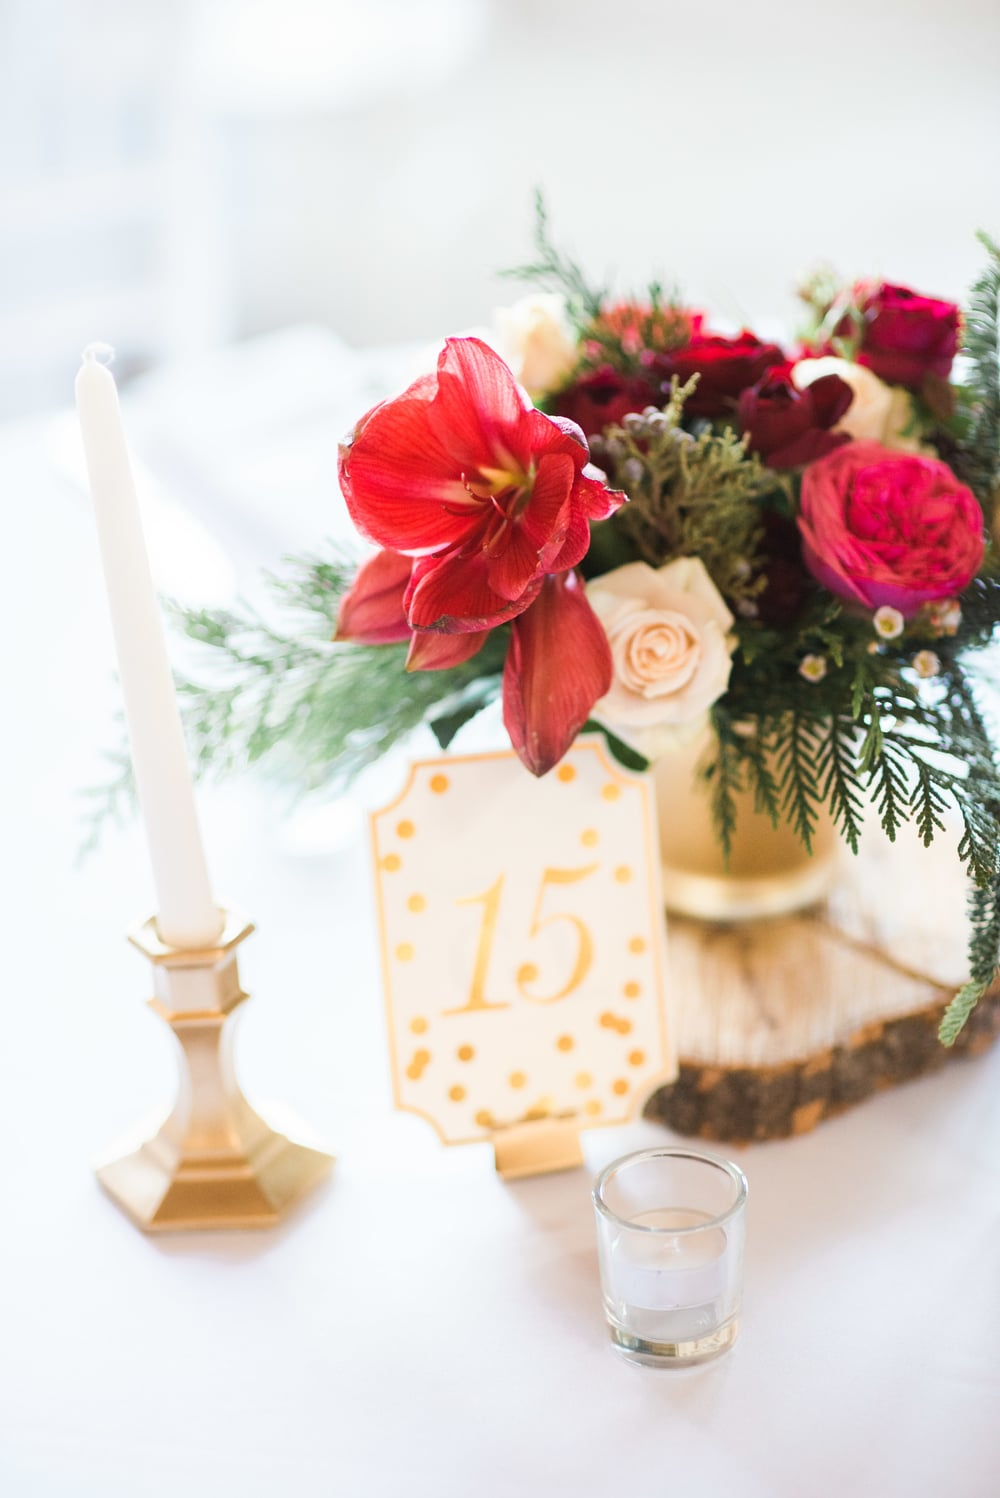 Natalie_Schutt_Photography_Winter_Wedding_San_Luis_Obispo-62.jpg